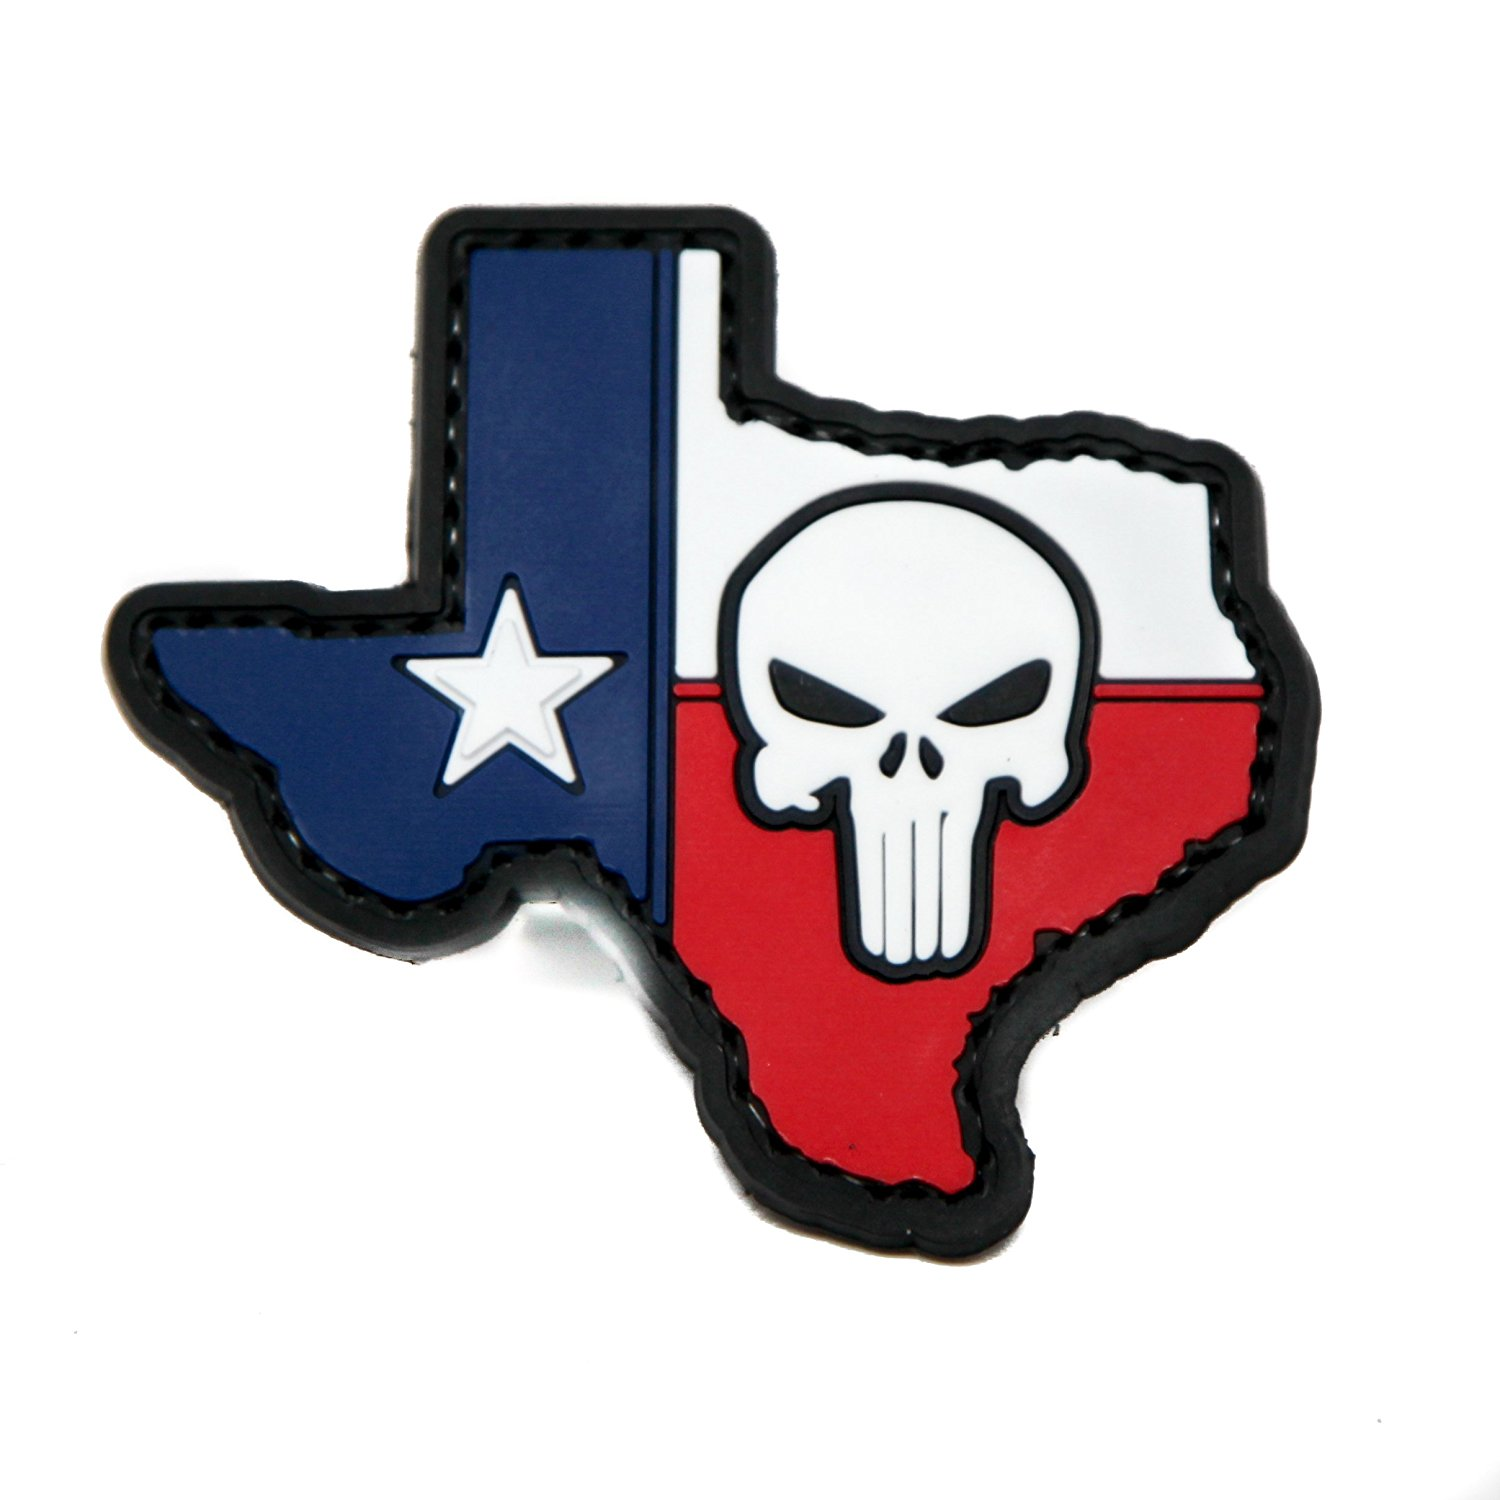 6879a9ebcc72 Buy Texas State Flag With Punisher PVC Morale Patch, Velcro Morale ...